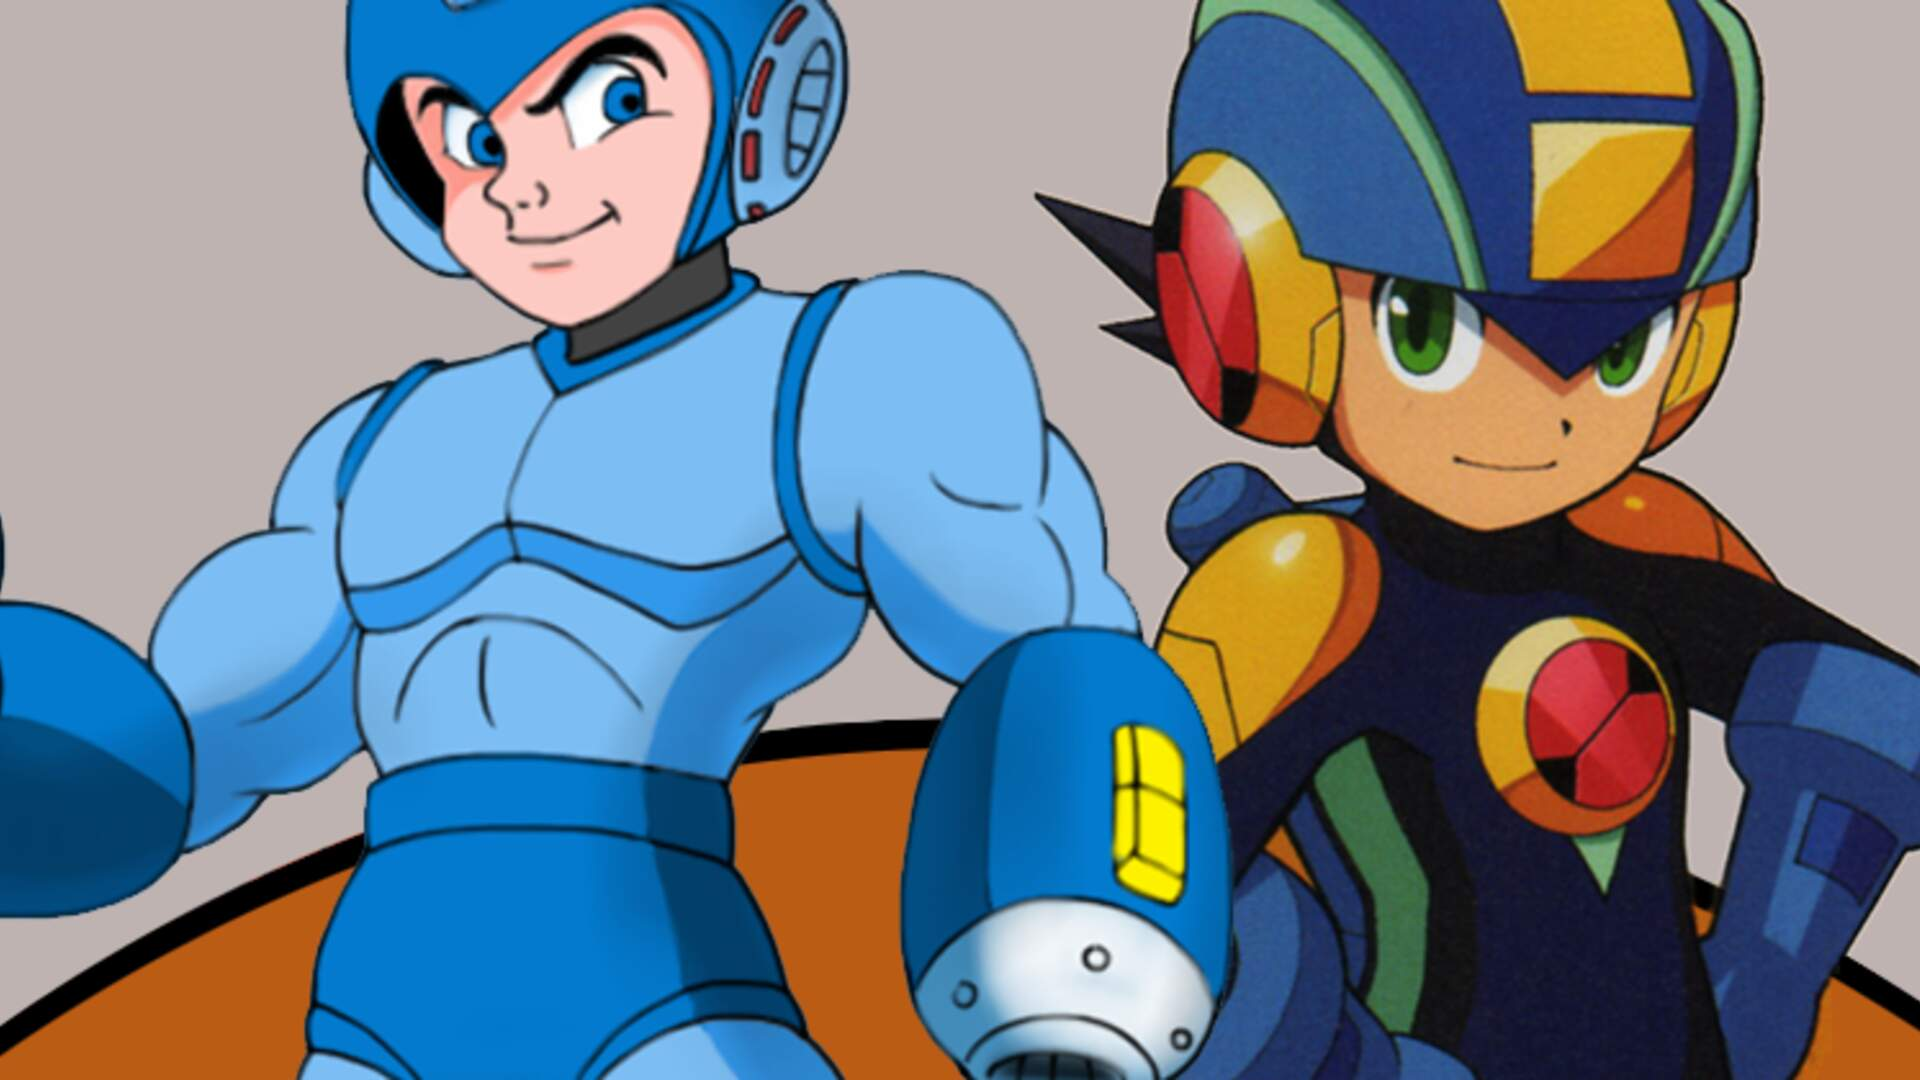 Blog: I Have No Idea What I Would Even Want from a Mega Man Cartoon